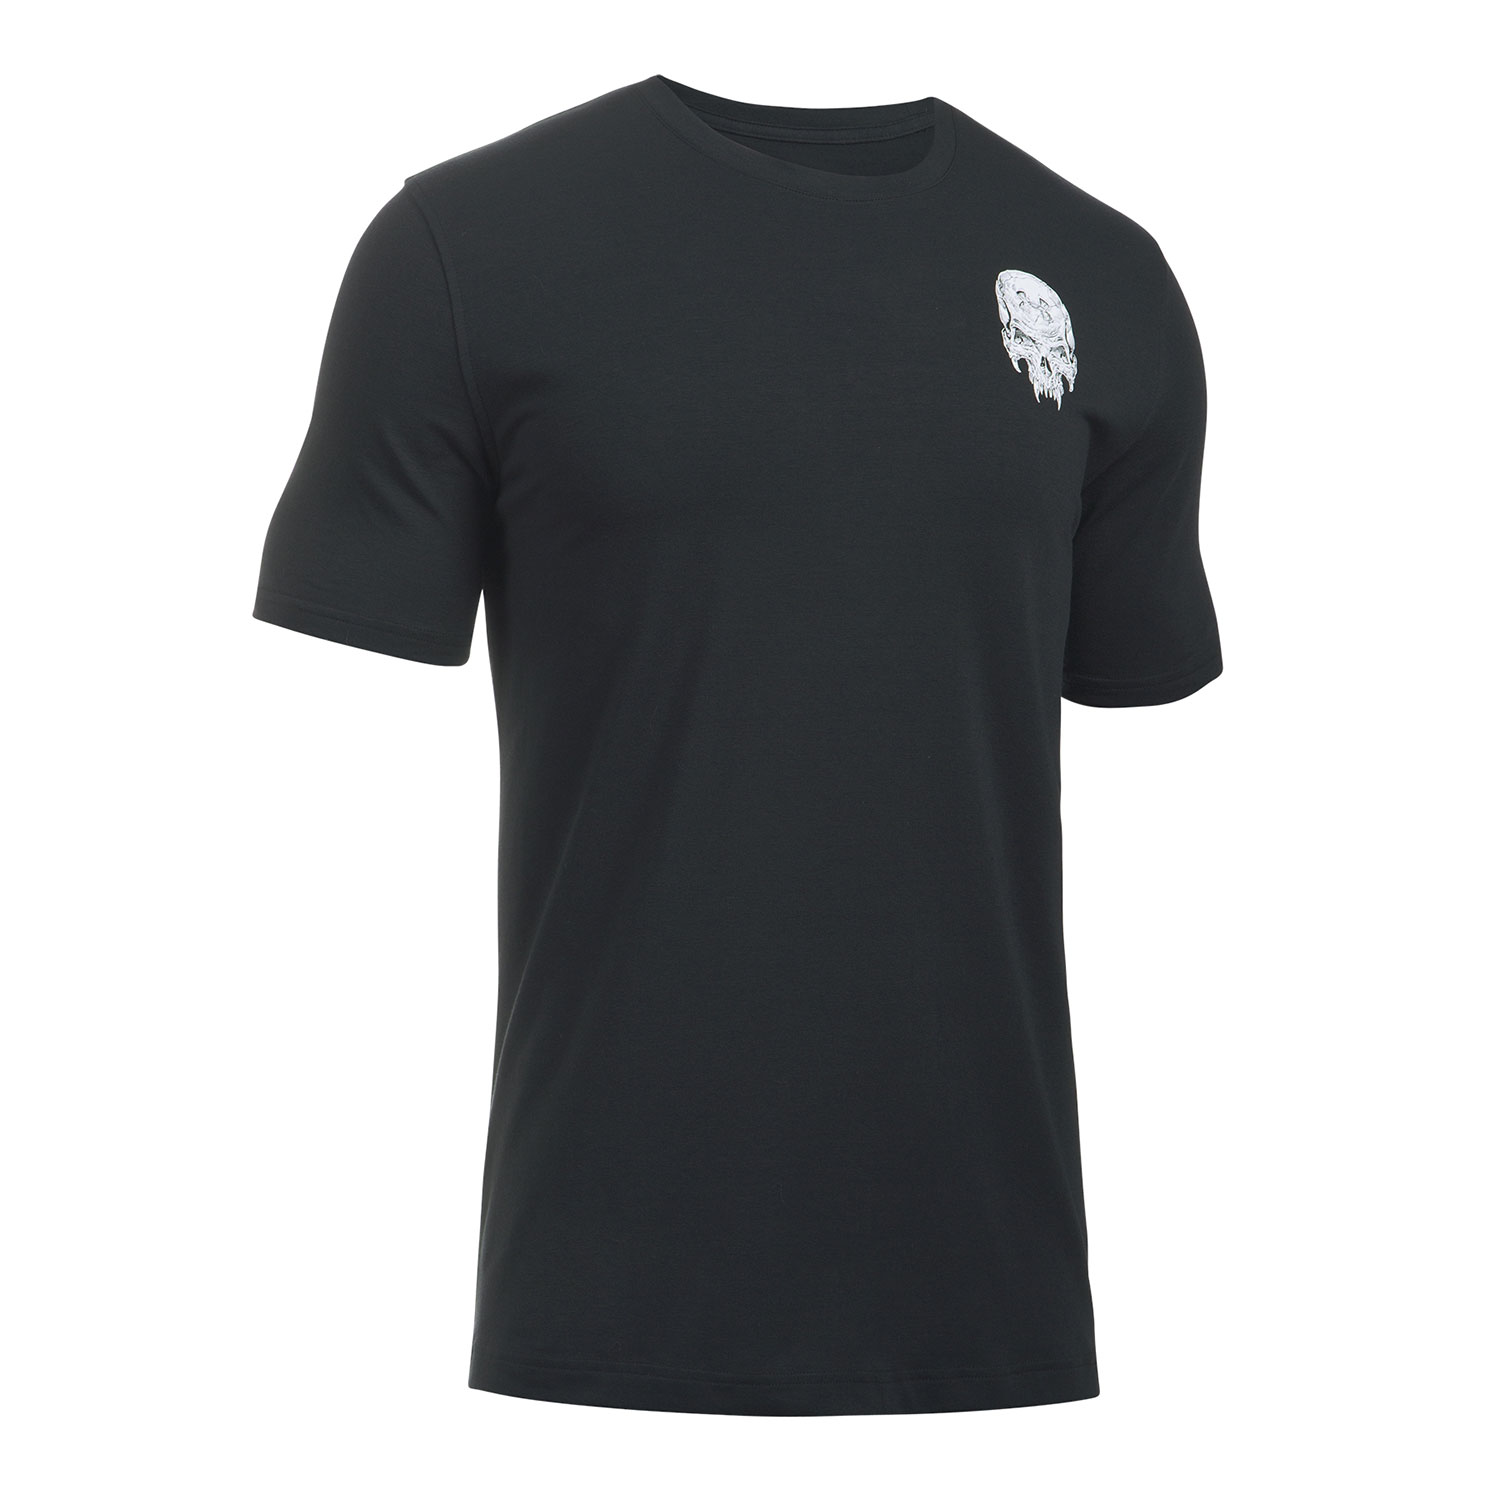 Under armour charged cotton freedom jack t shirt for Under armour charged shirt